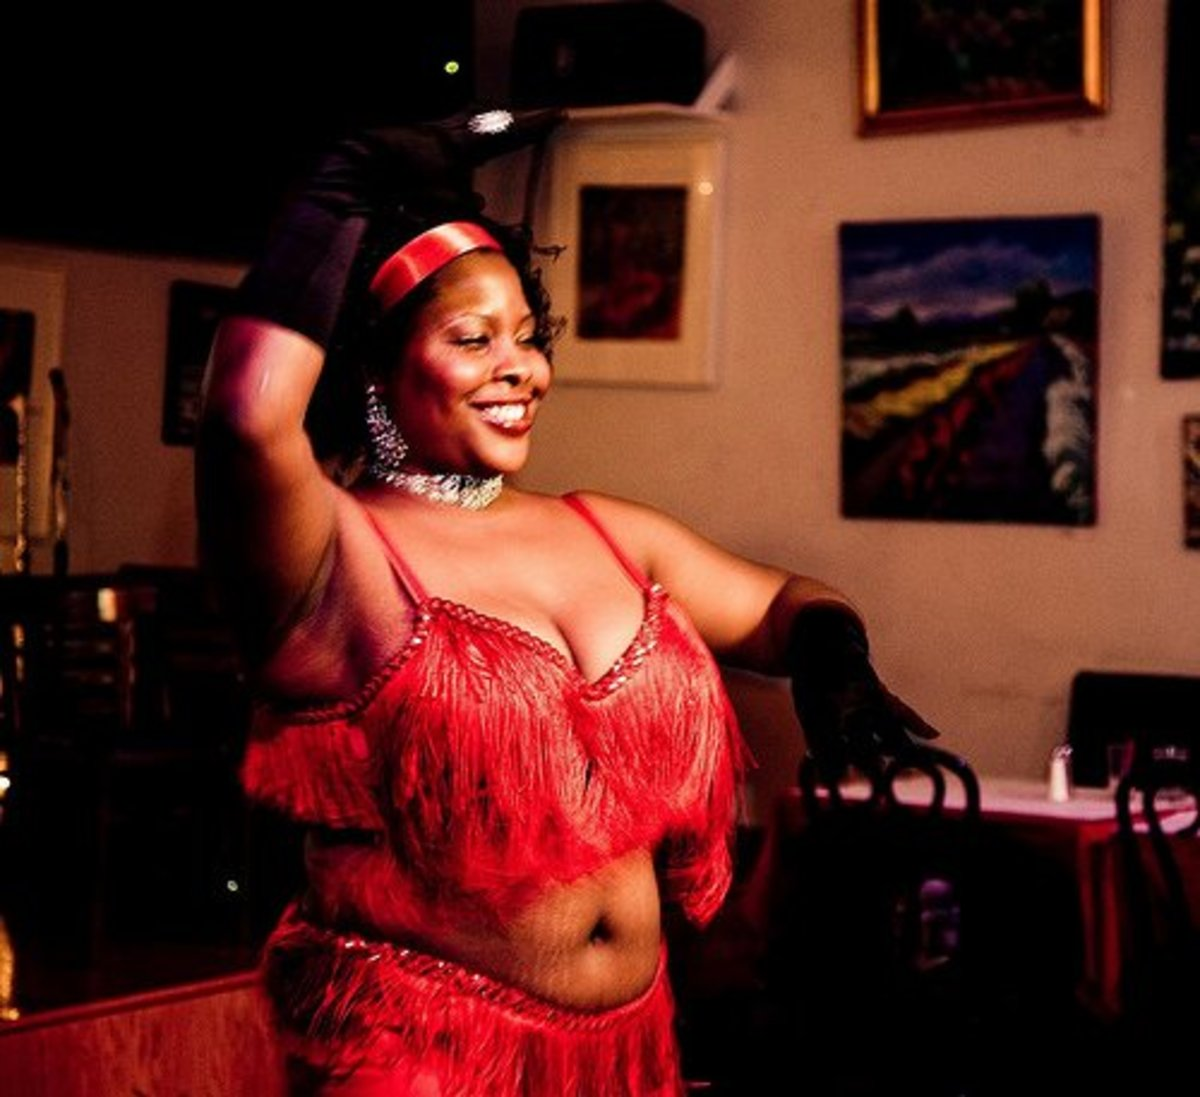 Mature belly dancers can look great in the right costume